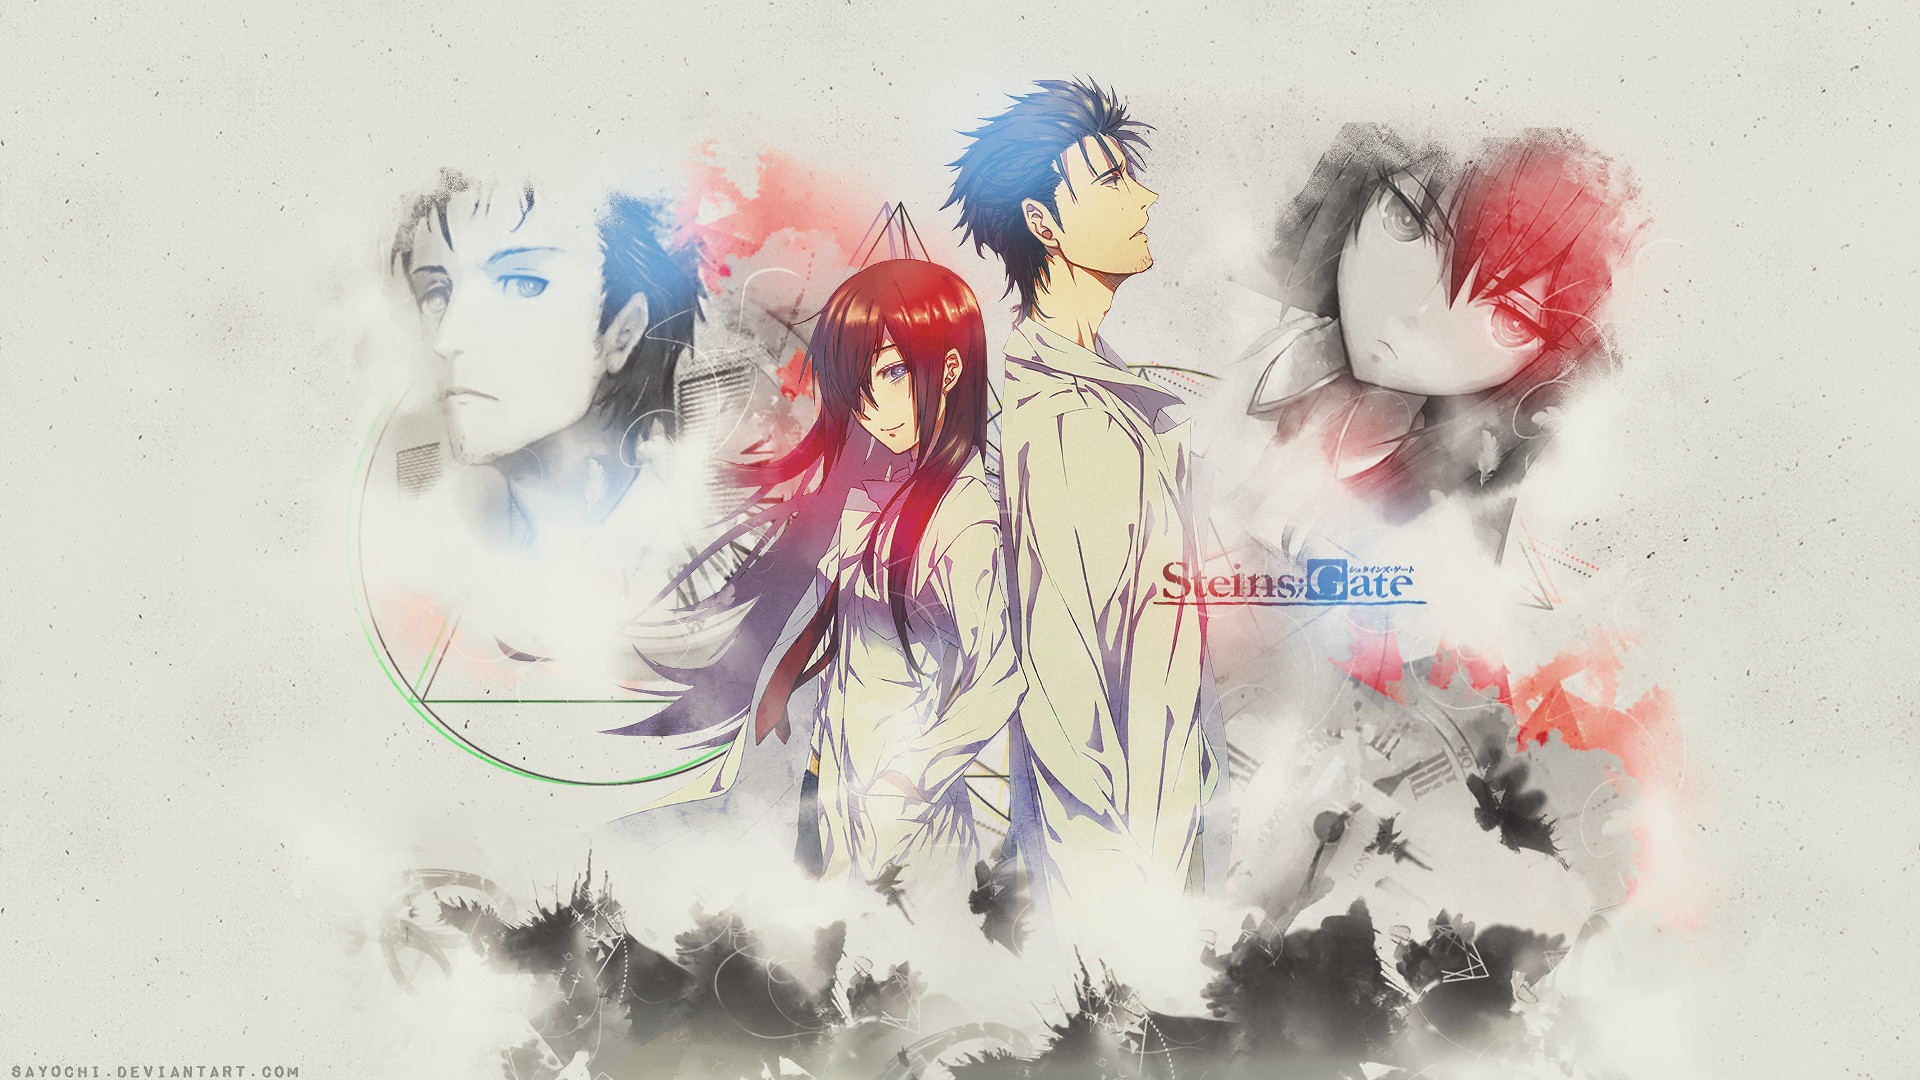 … Anime Steins Gate Wallpaper [1920×1080] HD by Say0chi